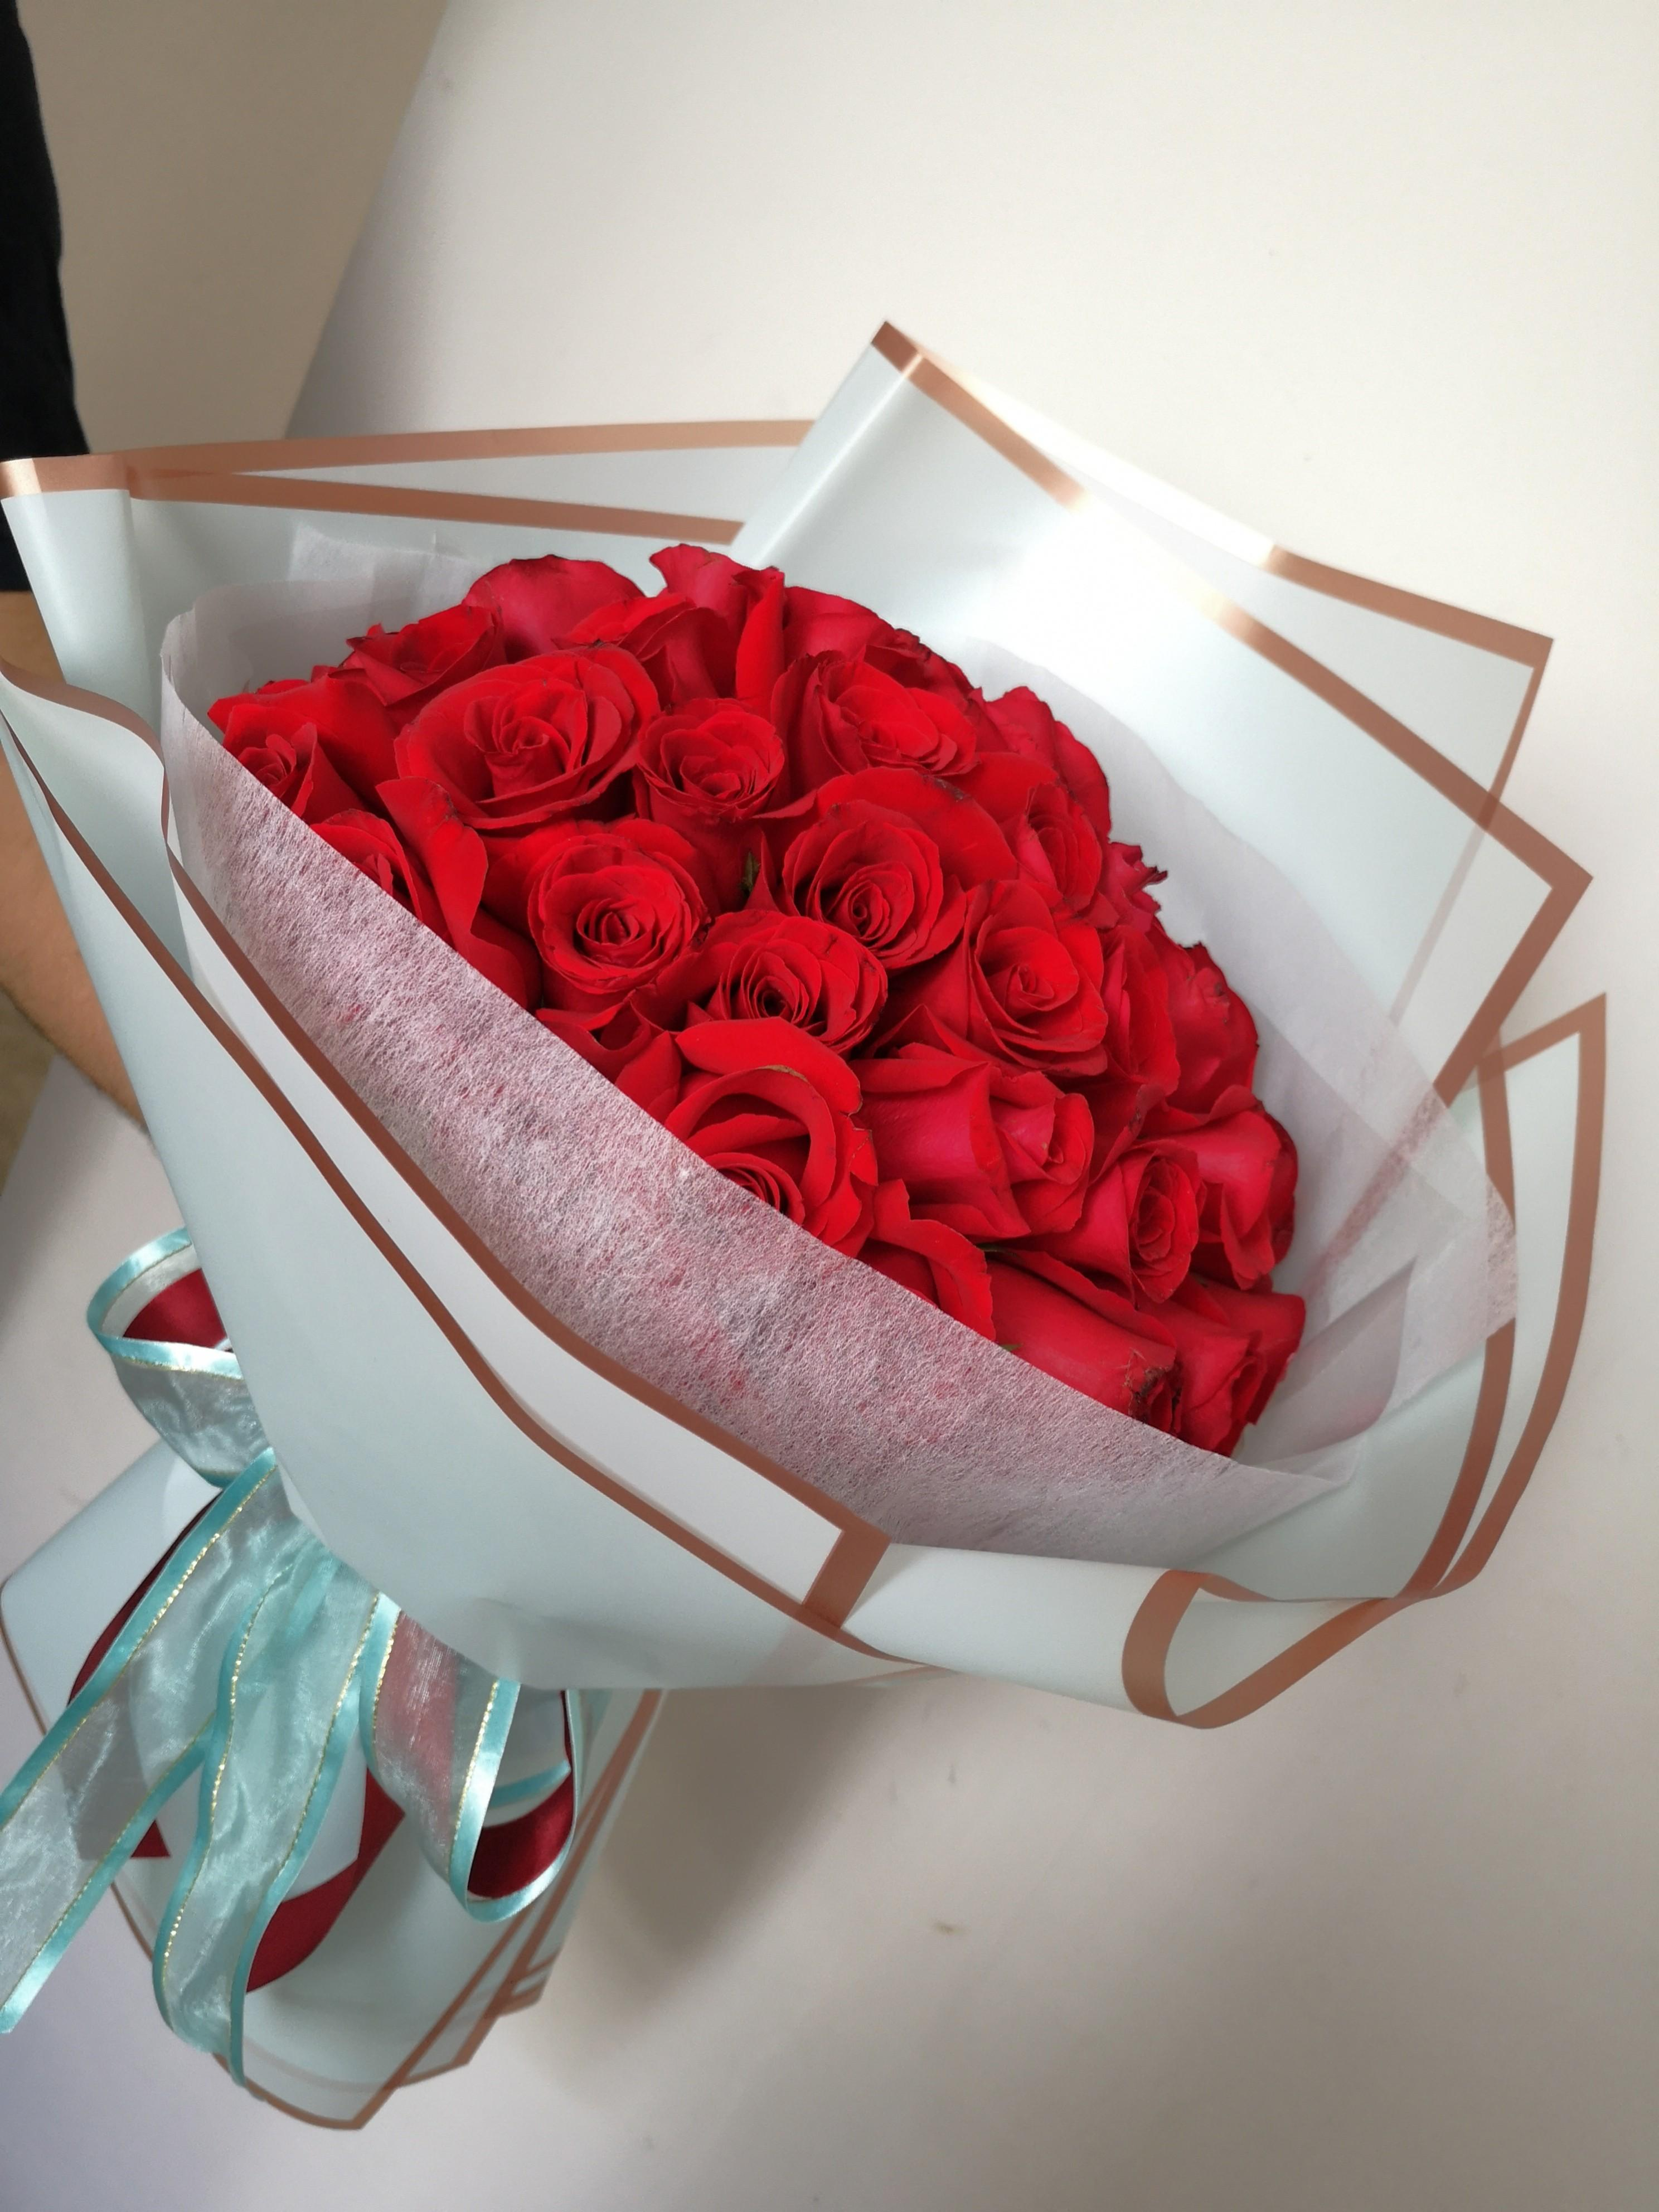 Free Delivery 50 Roses Bouquet Special Collection Fresh And Real Roses Flowers Gardening Flowers Bouquets On Carousell